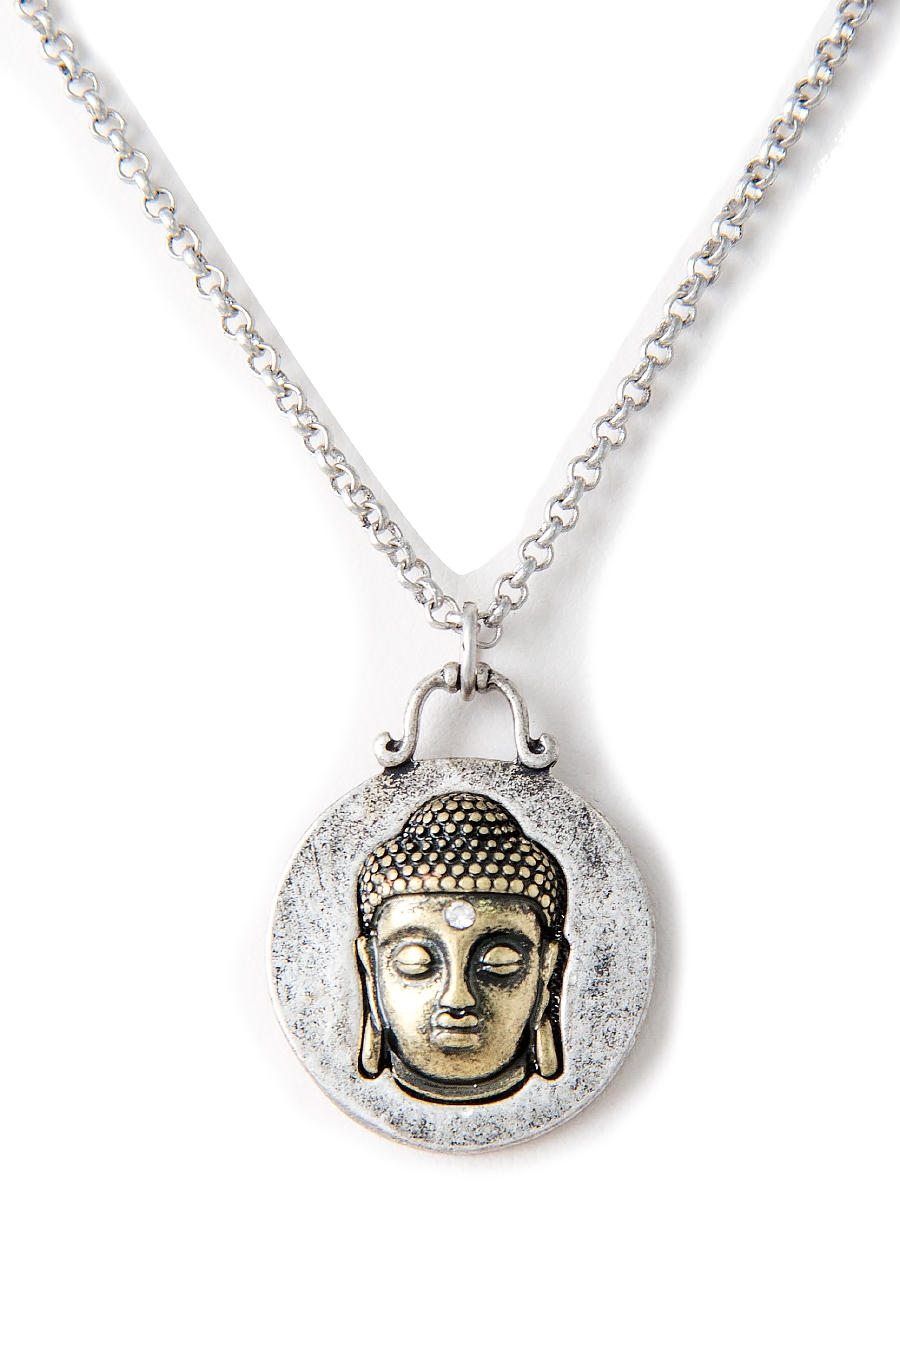 BUDDHA HEAD PENDANT NECKLACE - orangeshine.com